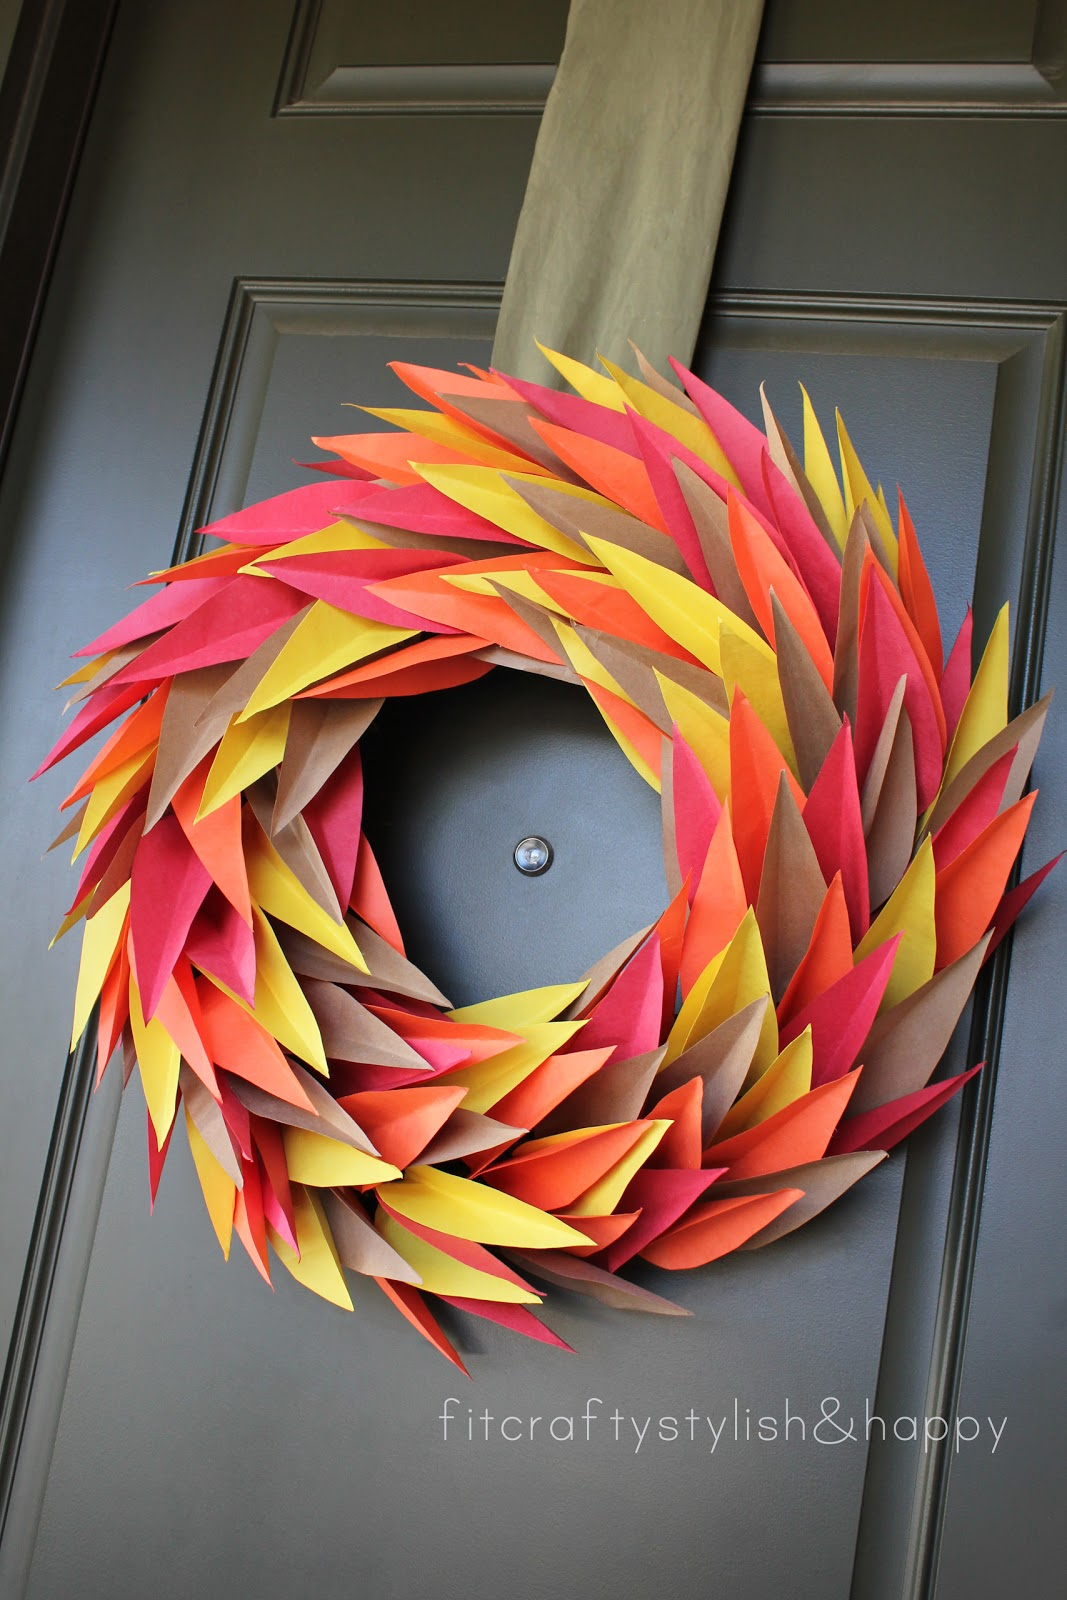 Fit crafty stylish and happy fall wreath for Diy thanksgiving door decorations